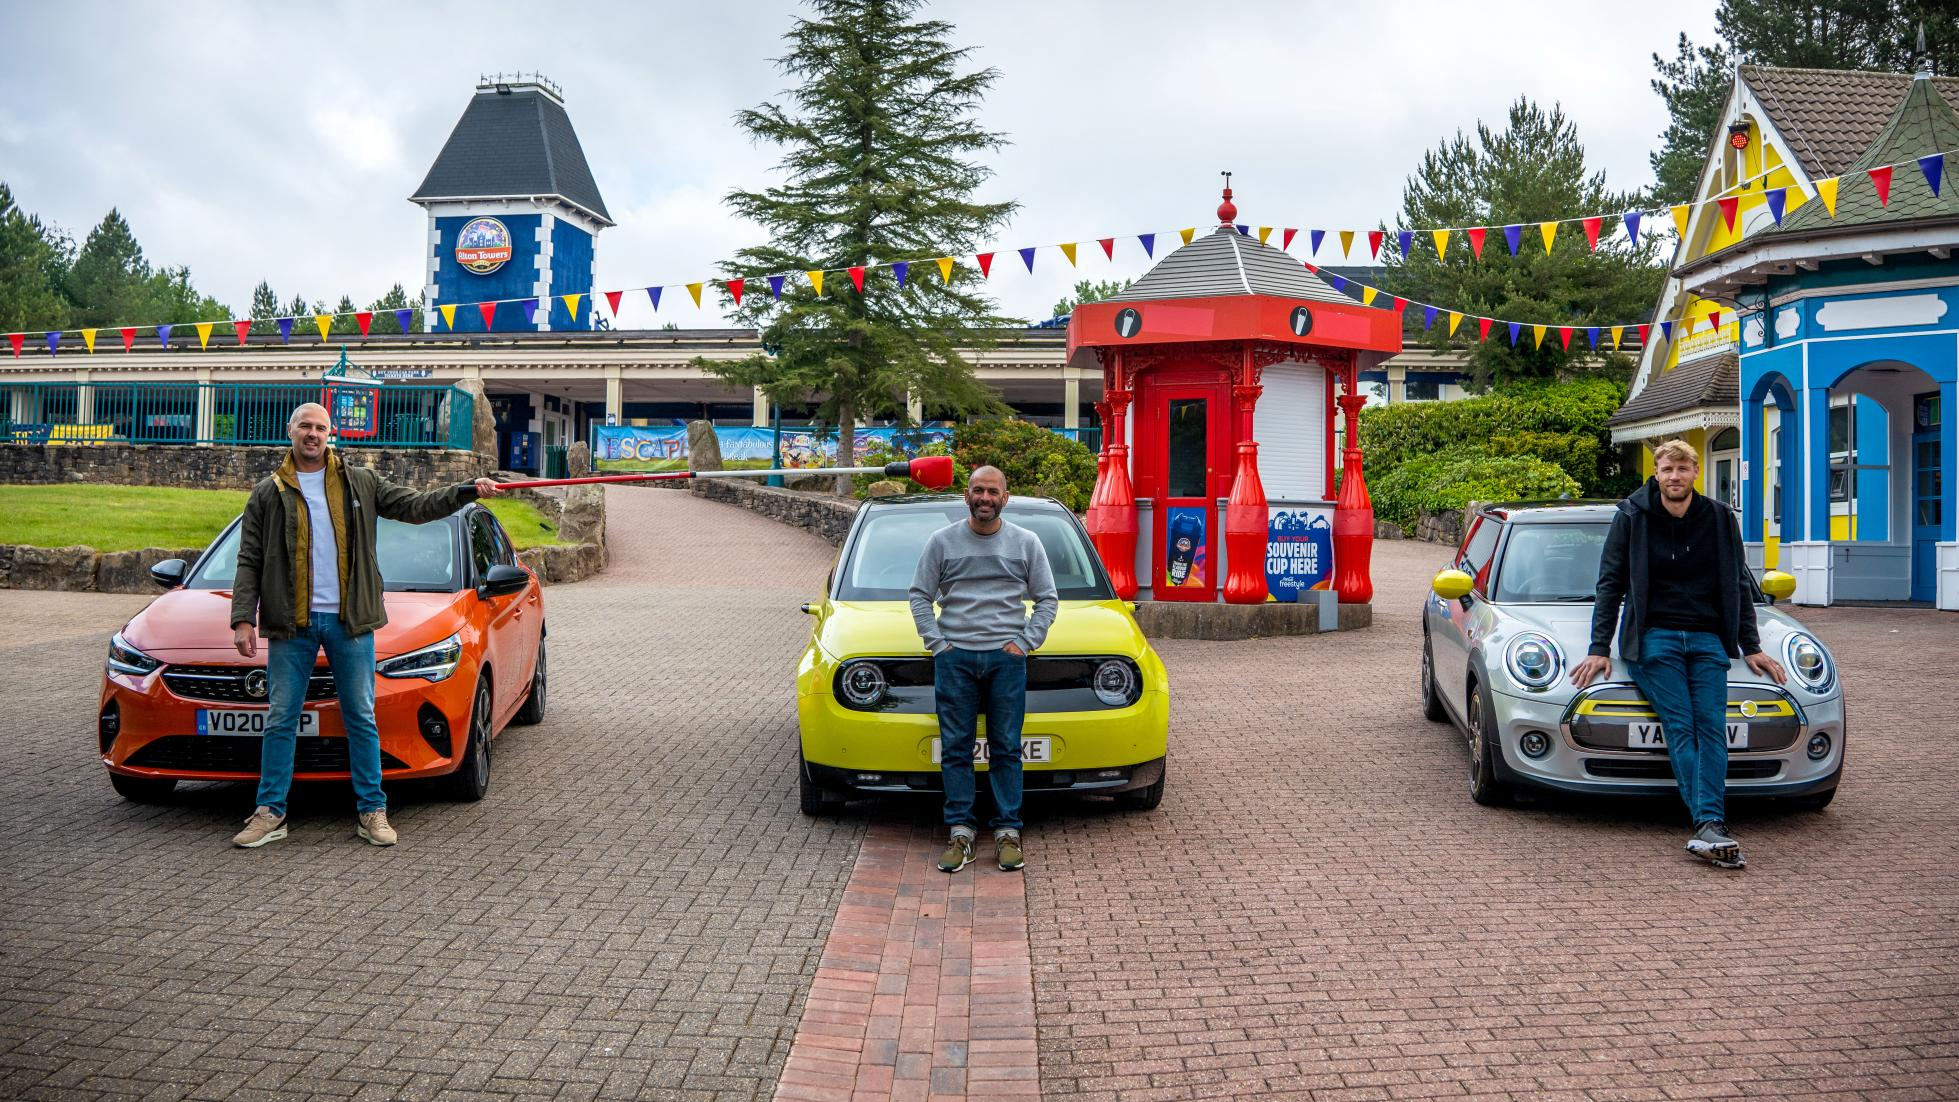 Alton Towers Top Gear, Merlin Entertainments